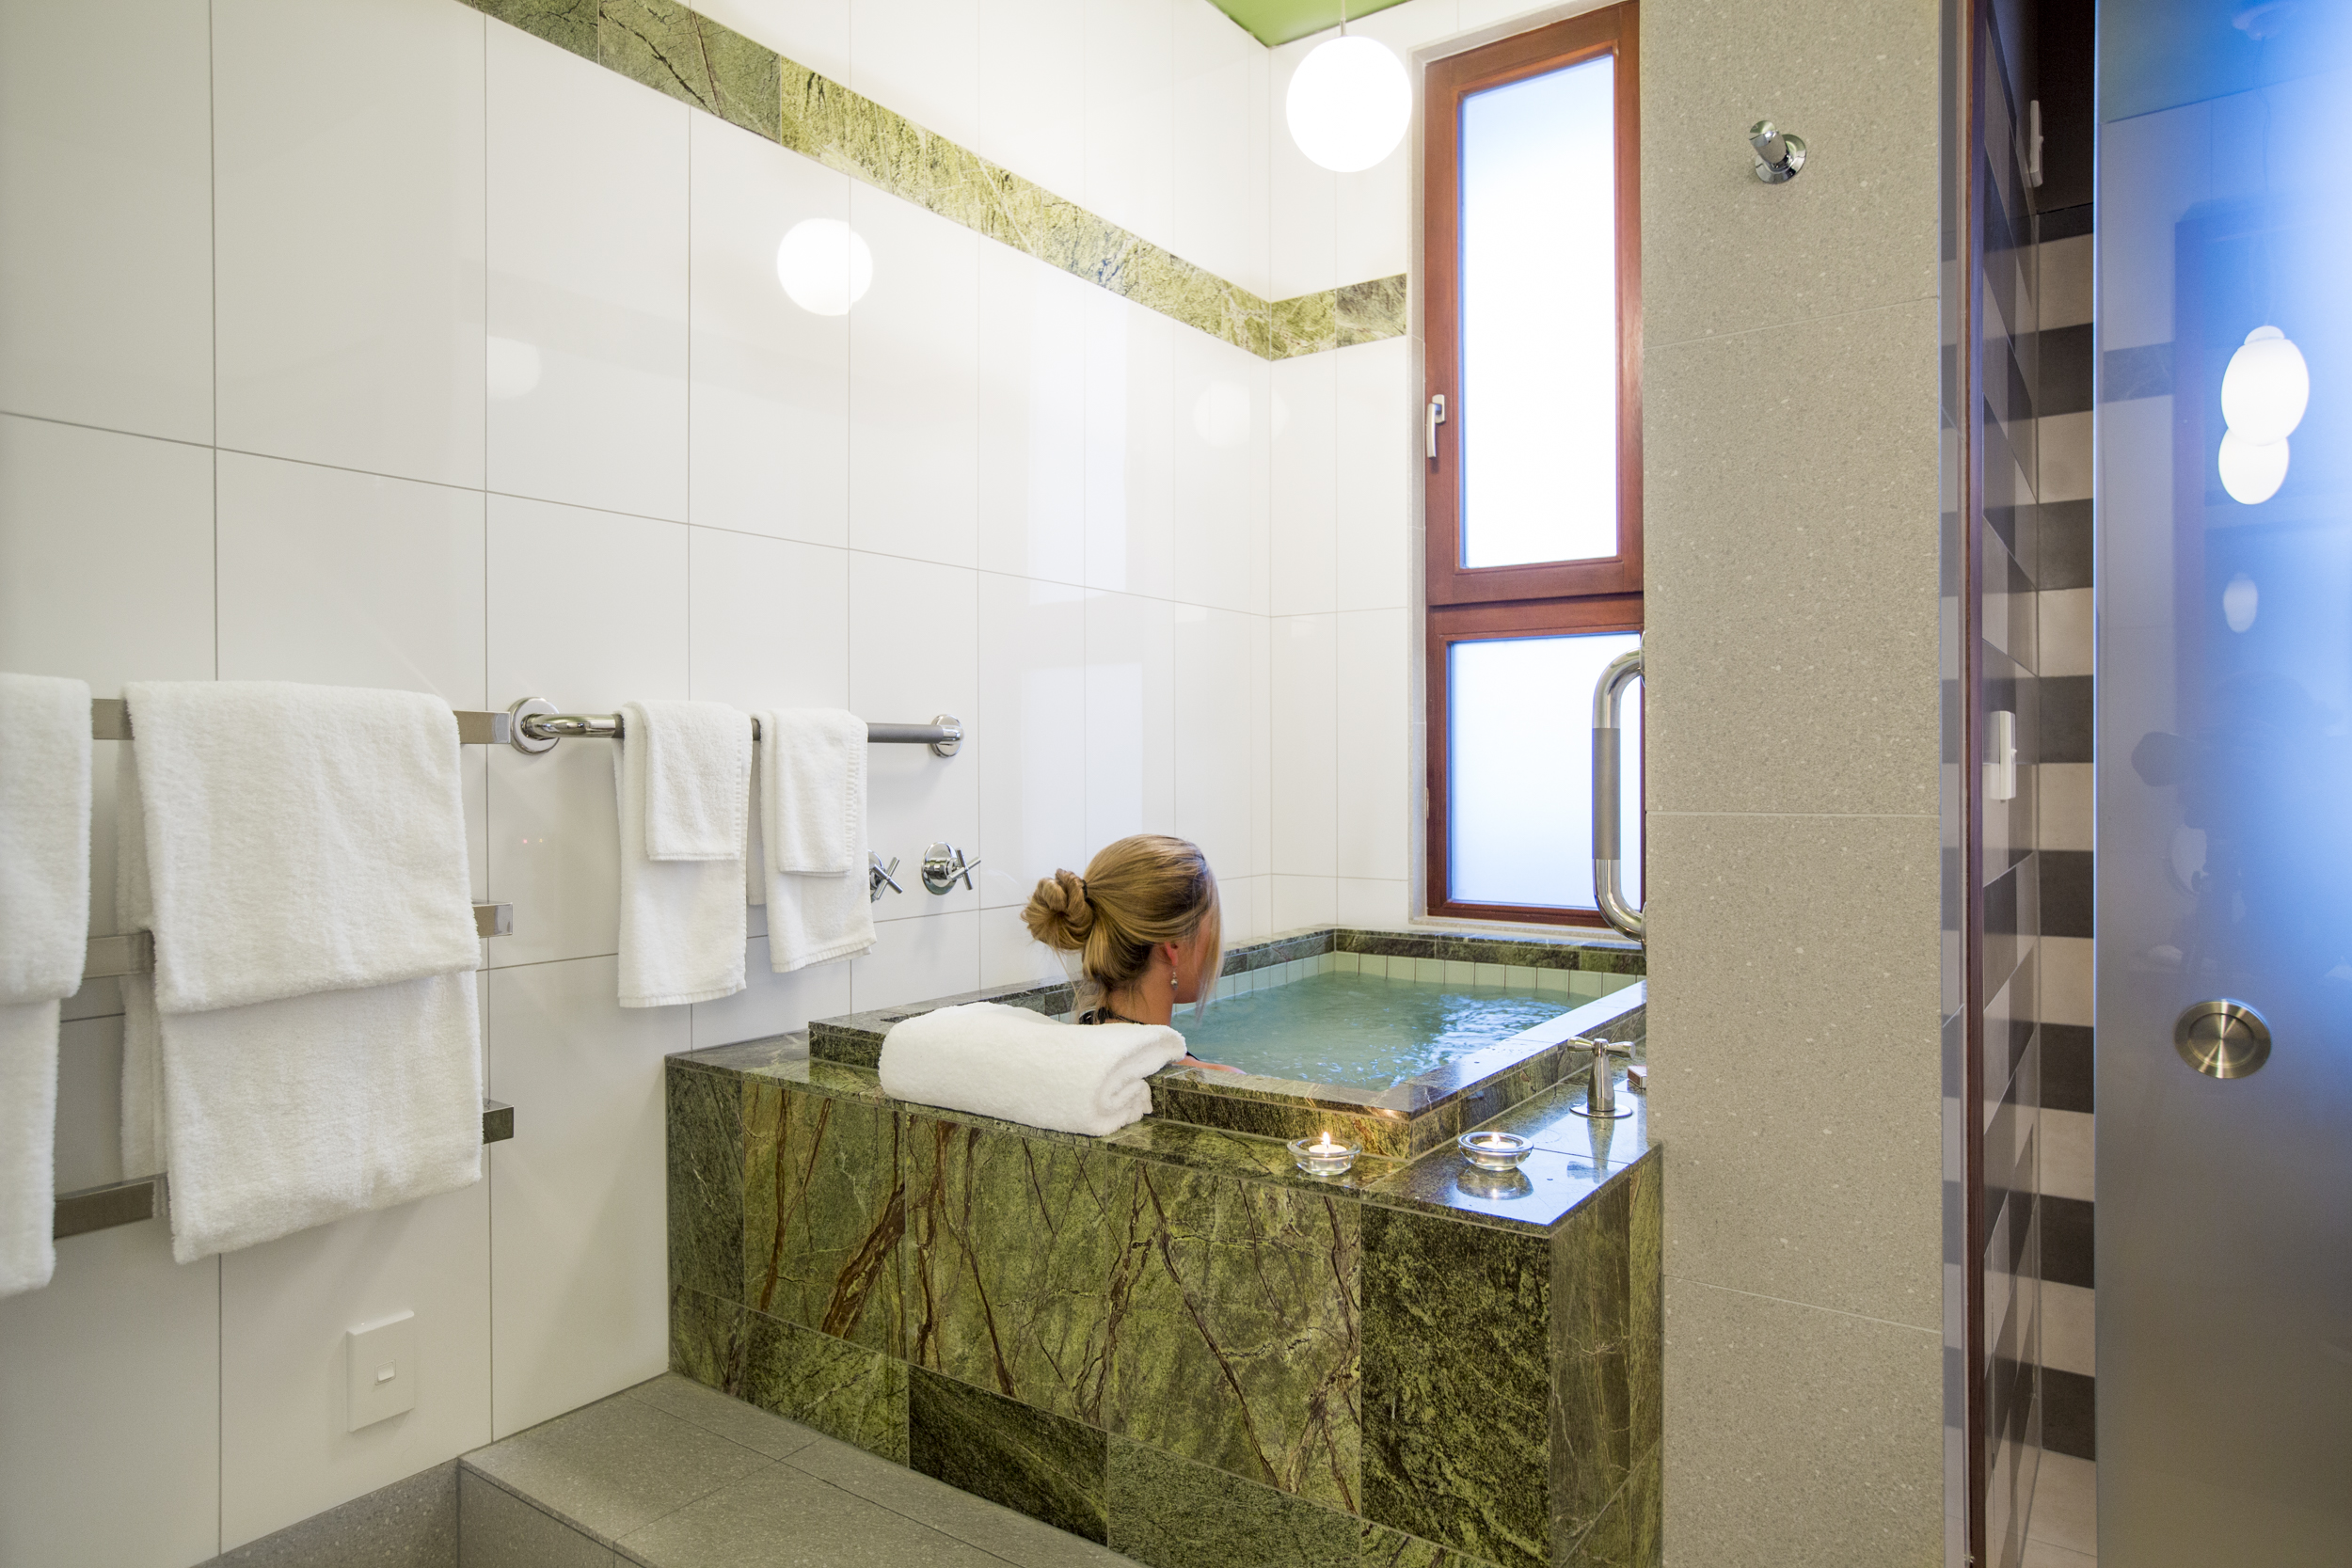 The depth and seating bench allow full body emersion in the soaking tub.